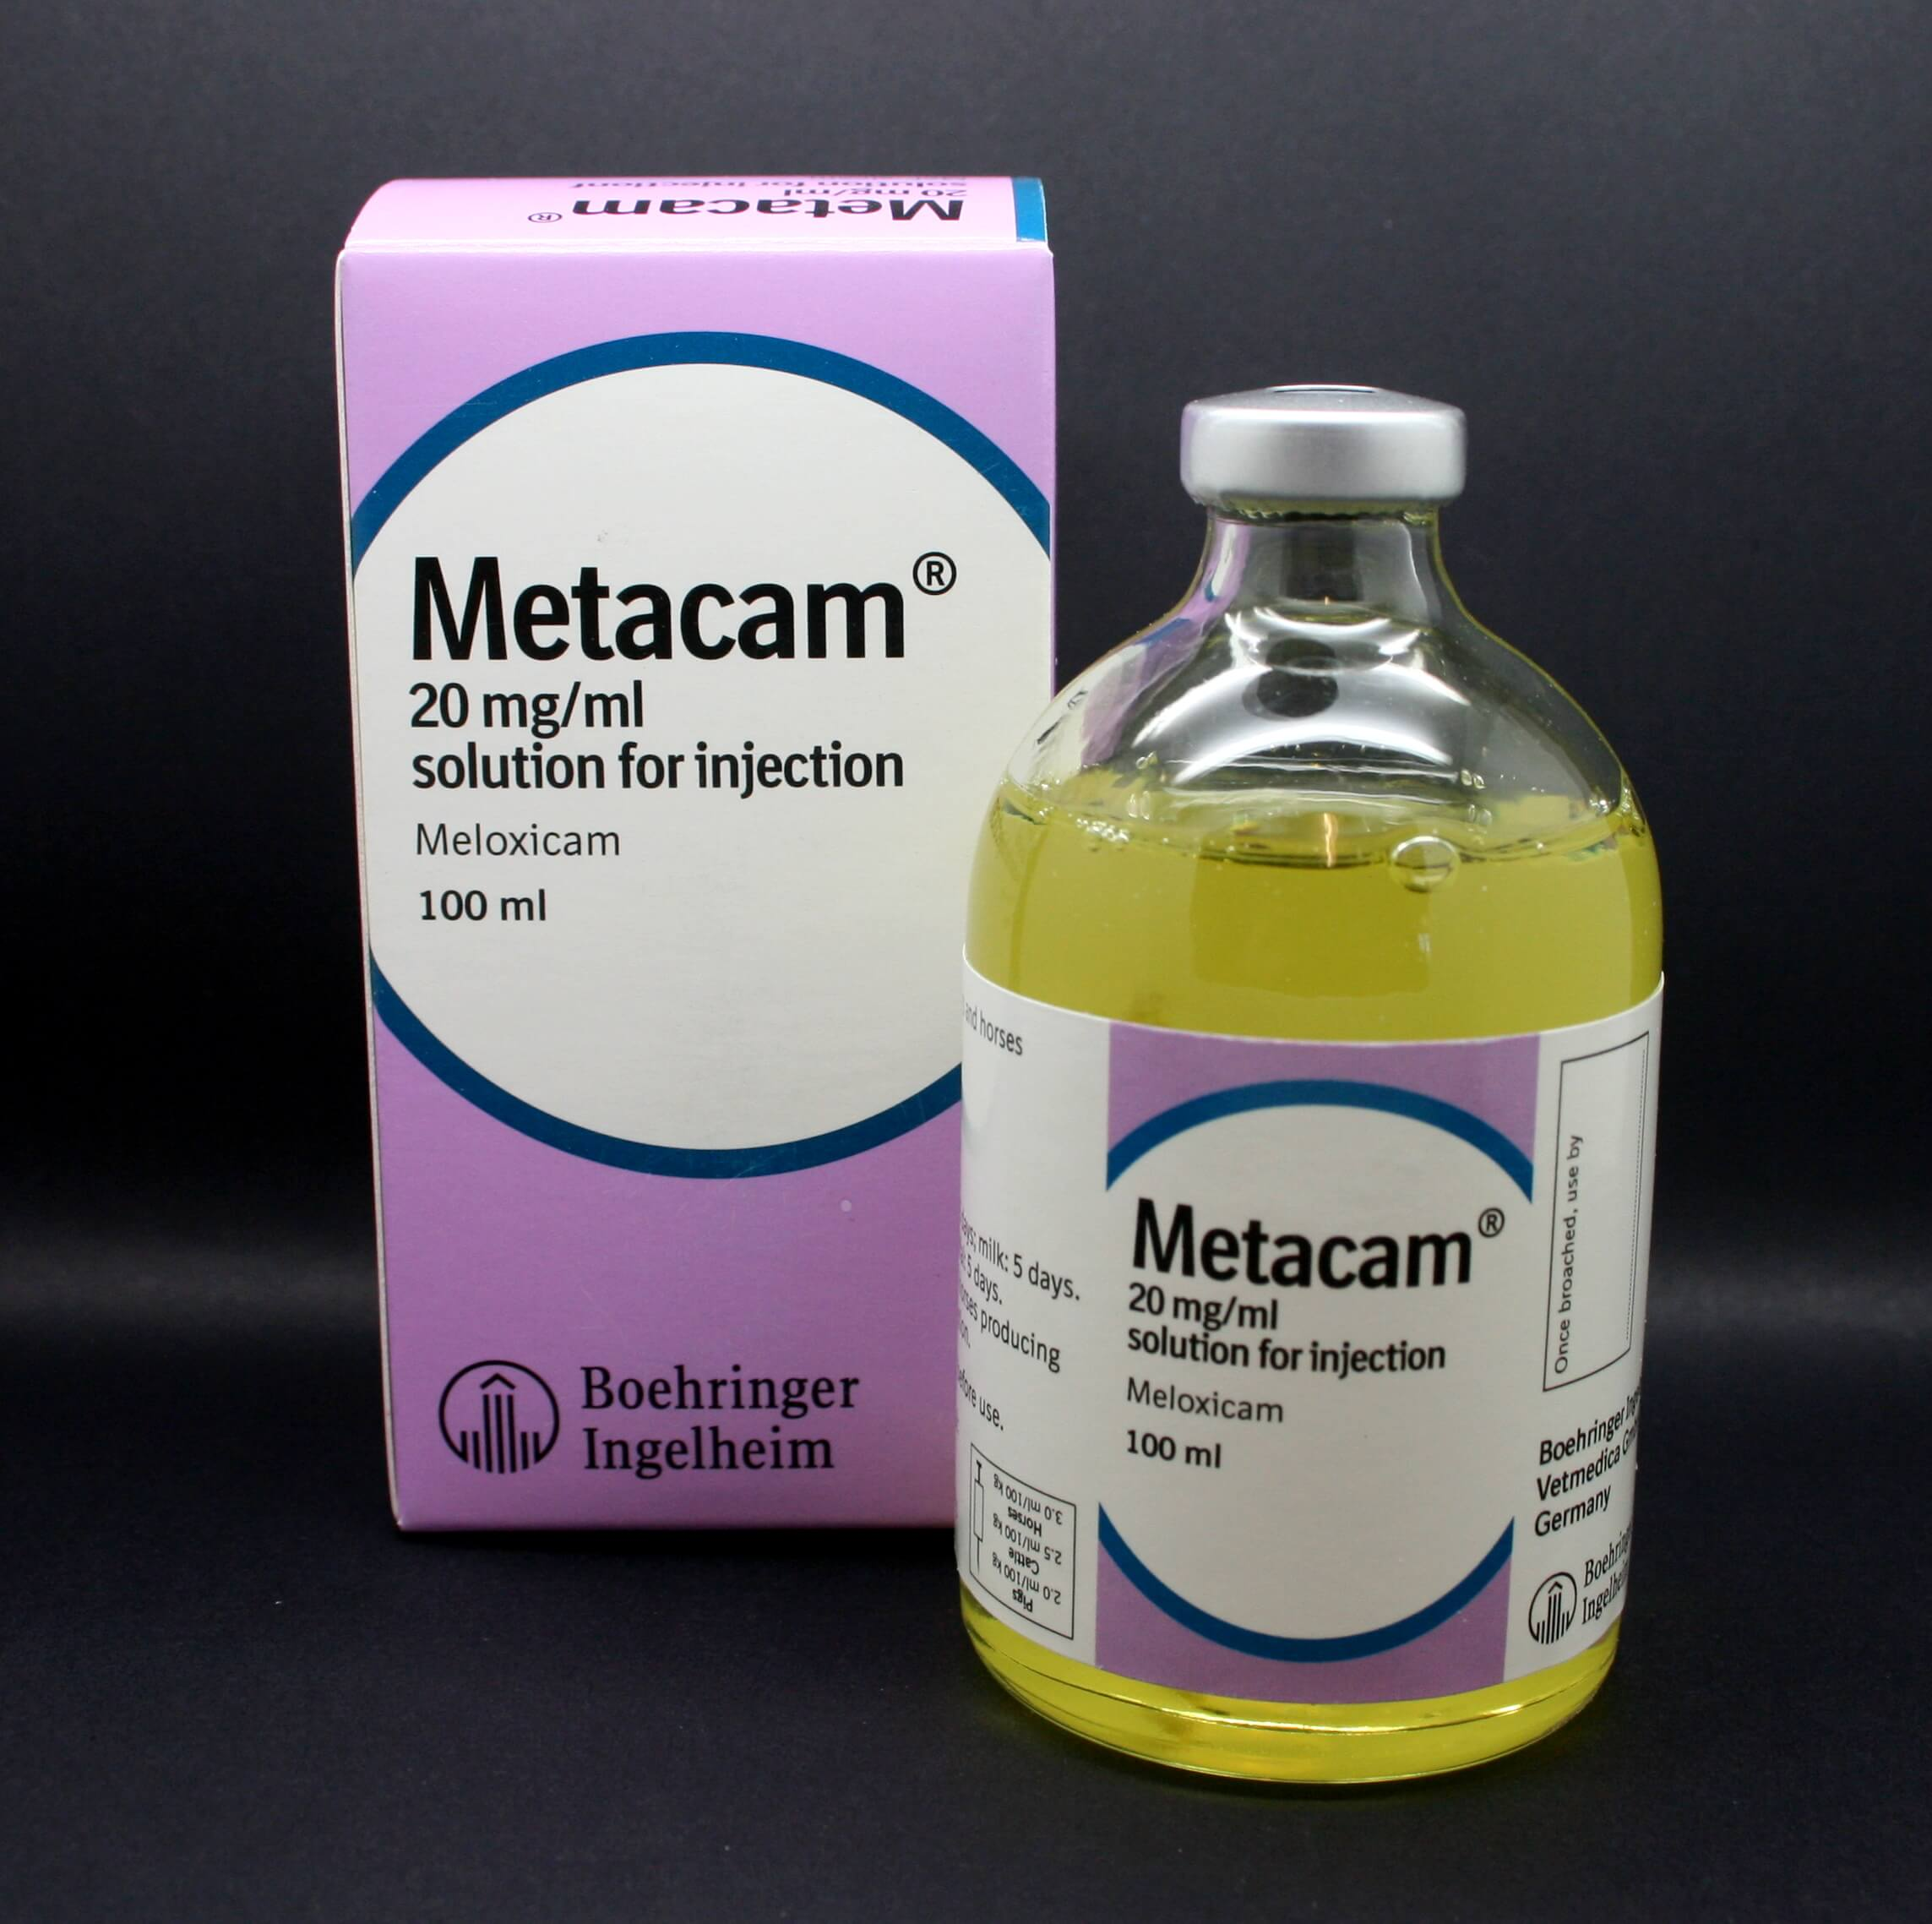 Metacam 20mg/ml Solution